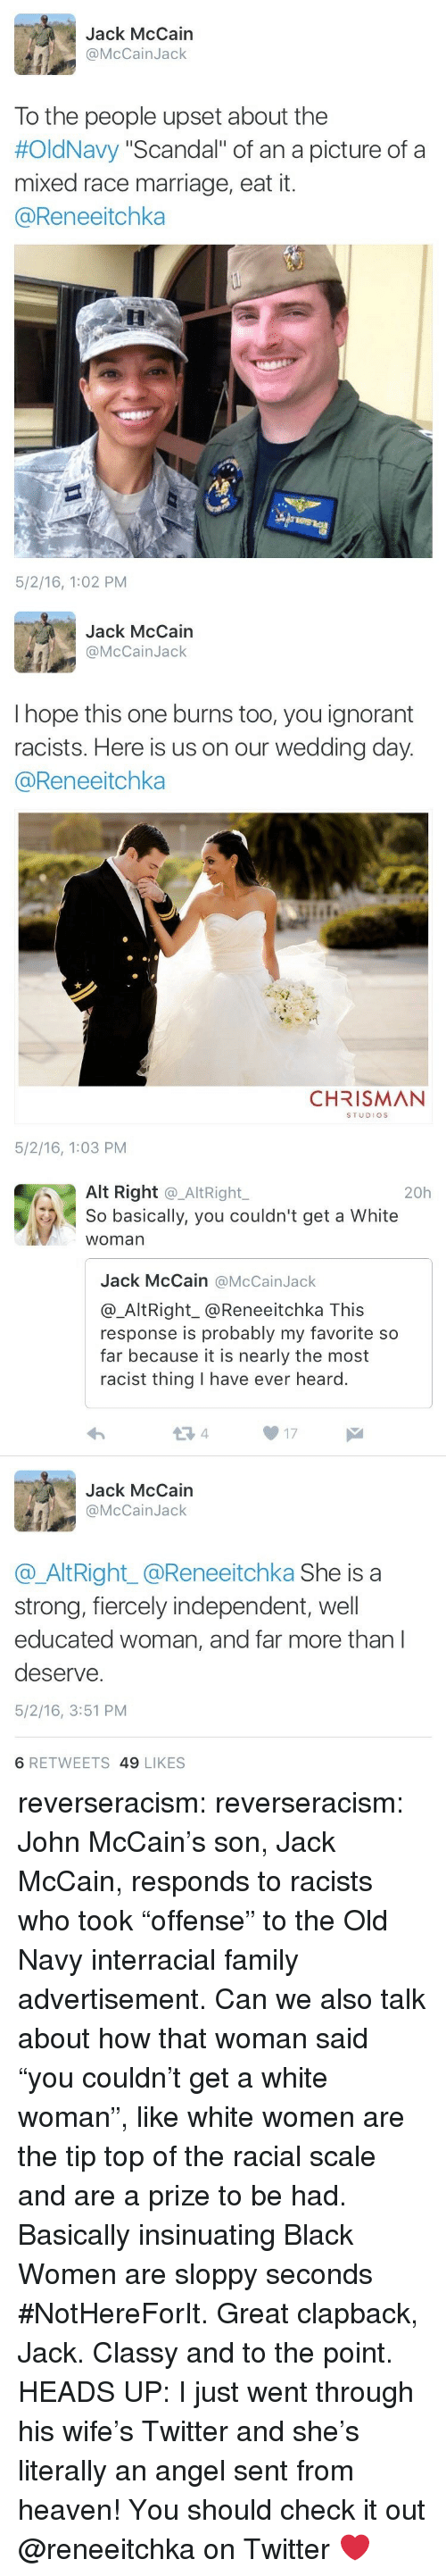 """Interracial: Jack McCain  @McCainJack  To the people upset about the  #OldNavy """"Scandal"""" of an a picture of a  mixed race marriage, eat it.  @Reneeitchka  5/2/16, 1:02 PM   Jack McCain  @McCainJack  I hope this one burns too, you ignorant  racists. Here is us on our wedding day  @Reneeitchka  CHRISMAN  STUDIOS  5/2/16, 1:03 PM   Alt Right @_AltRight,  So basically, you couldn't get a White  woman  20h  Jack McCain @McCainJack  @_AltRight_@Reneeitchka This  response is probably my favorite so  far because it is nearly the most  racist thing I have ever heard.  13 4  17  Jack McCain  @McCainJack  @AltRight_@Reneeitchka She is a  strong, fiercely independent, well  educated woman, and far more than l  deserve.  5/2/16, 3:51 PM  6 RETWEETS 49 LIKES reverseracism: reverseracism:  John McCain's son, Jack McCain, responds to racists who took """"offense"""" to the Old Navy interracial family advertisement.   Can we also talk about how that woman said """"you couldn't get a white woman"""", like white women are the tip top of the racial scale and are a prize to be had. Basically insinuating Black Women are sloppy seconds #NotHereForIt. Great clapback, Jack. Classy and to the point.  HEADS UP: I just went through his wife's Twitter and she's literally an angel sent from heaven!  You should check it out @reneeitchka on Twitter ❤️"""